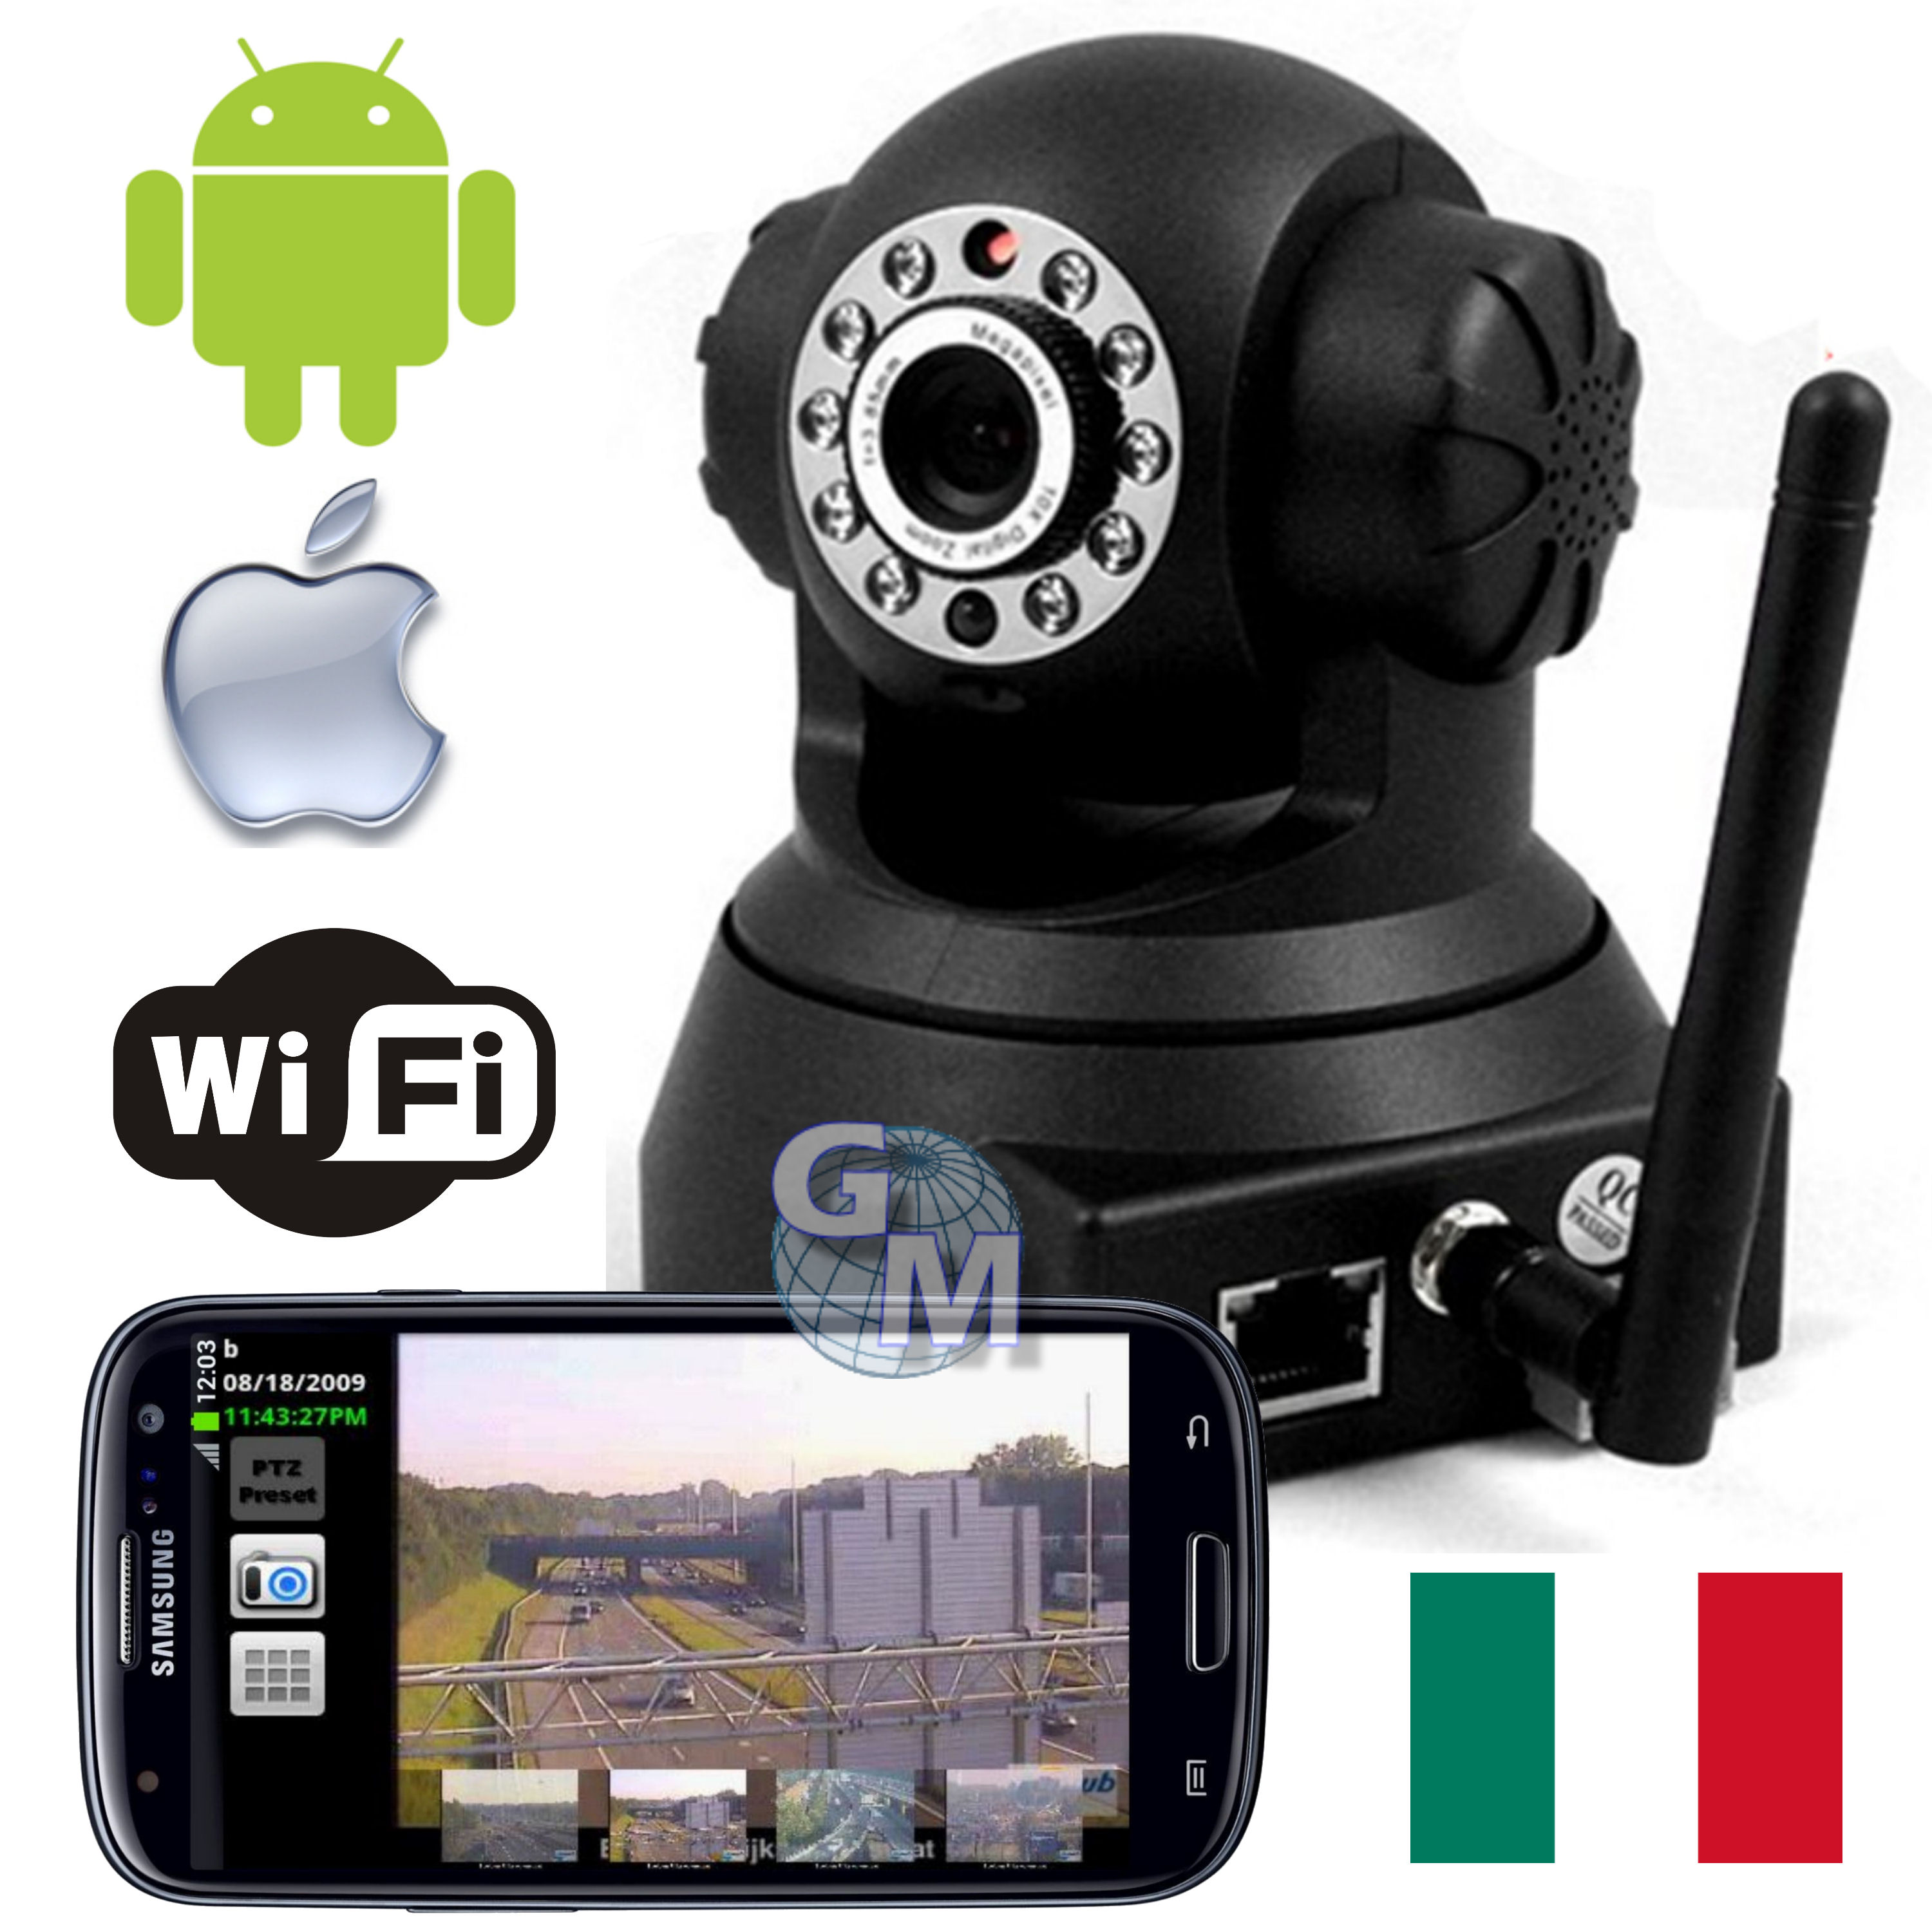 Ip camera ipcamera wifi motorizzata android iphone led ir for App per vedere telecamere su android